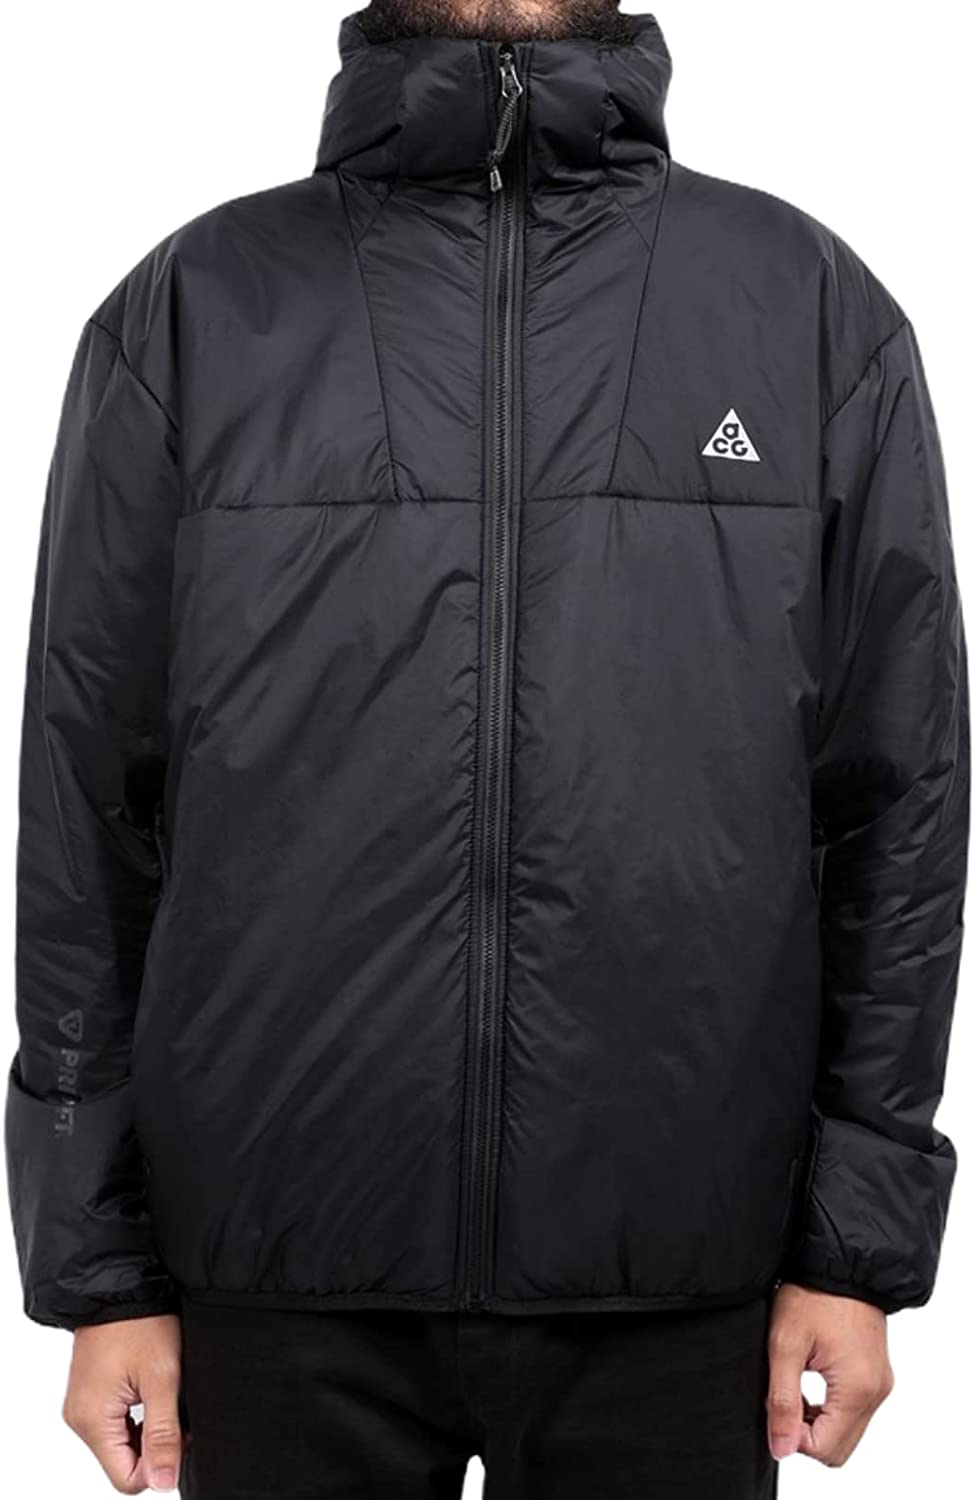 Nike ACG Rope De Dope Packable Insulated Jacket Black